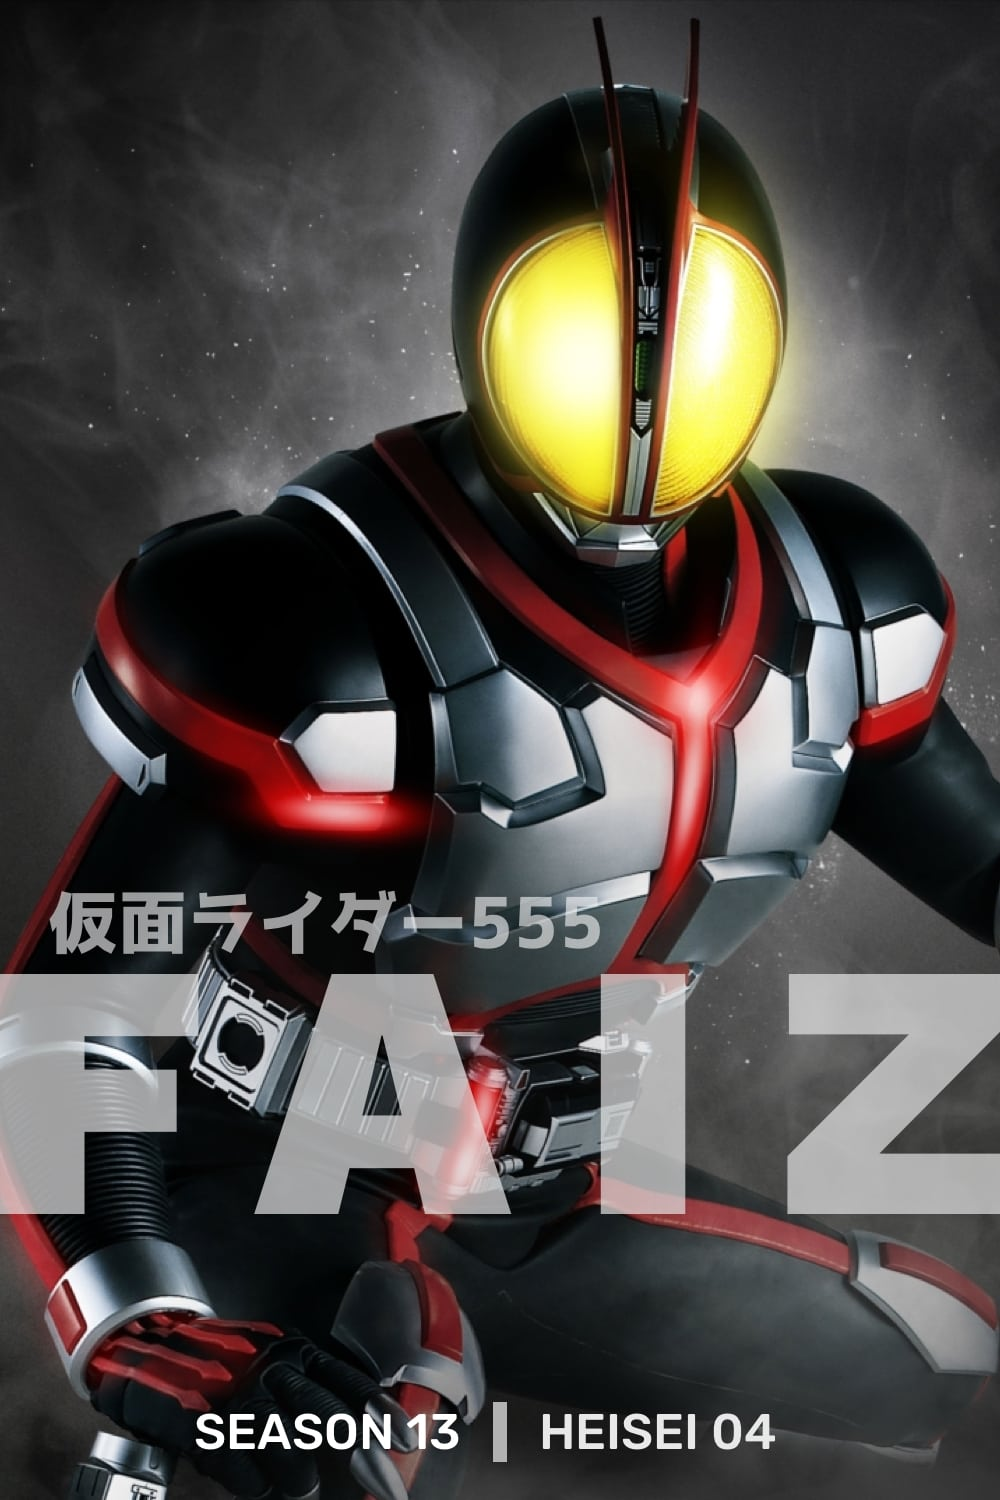 Kamen Rider - Season 21 Episode 42 : Ice, Greeed Form, Broken Wings Season 13